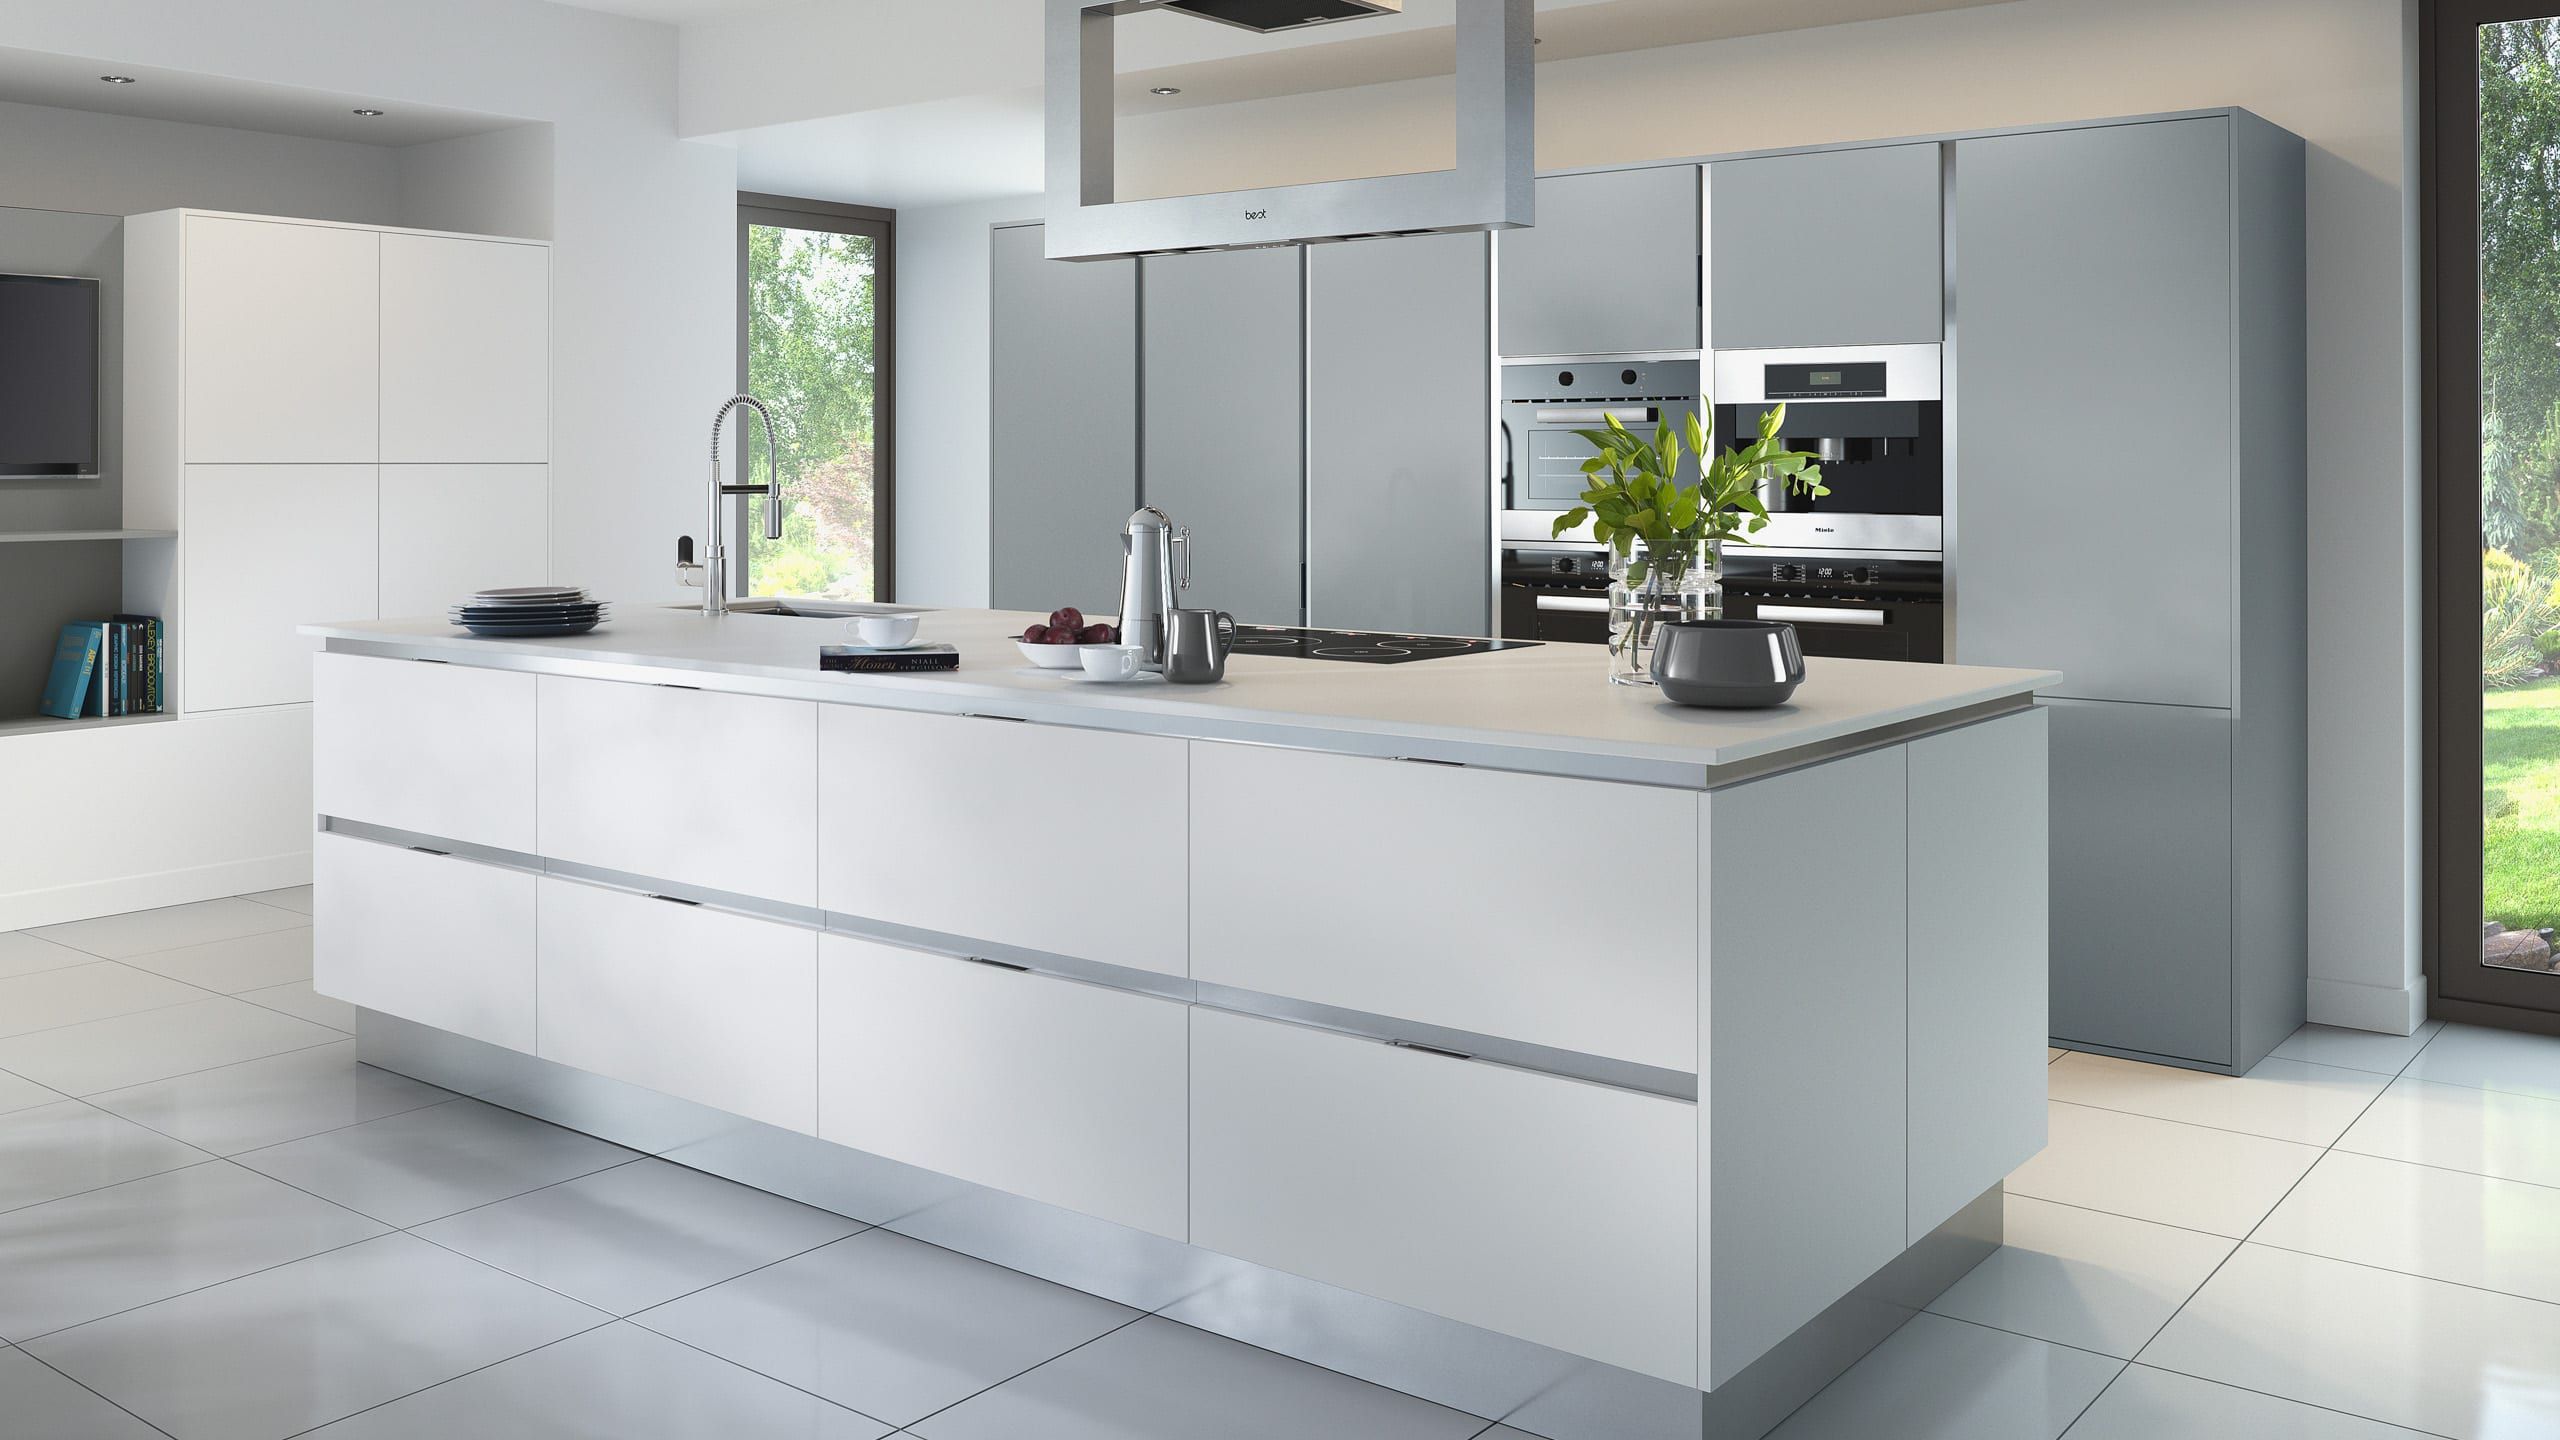 Inset Setosa Painted Light Grey and White - kitchen